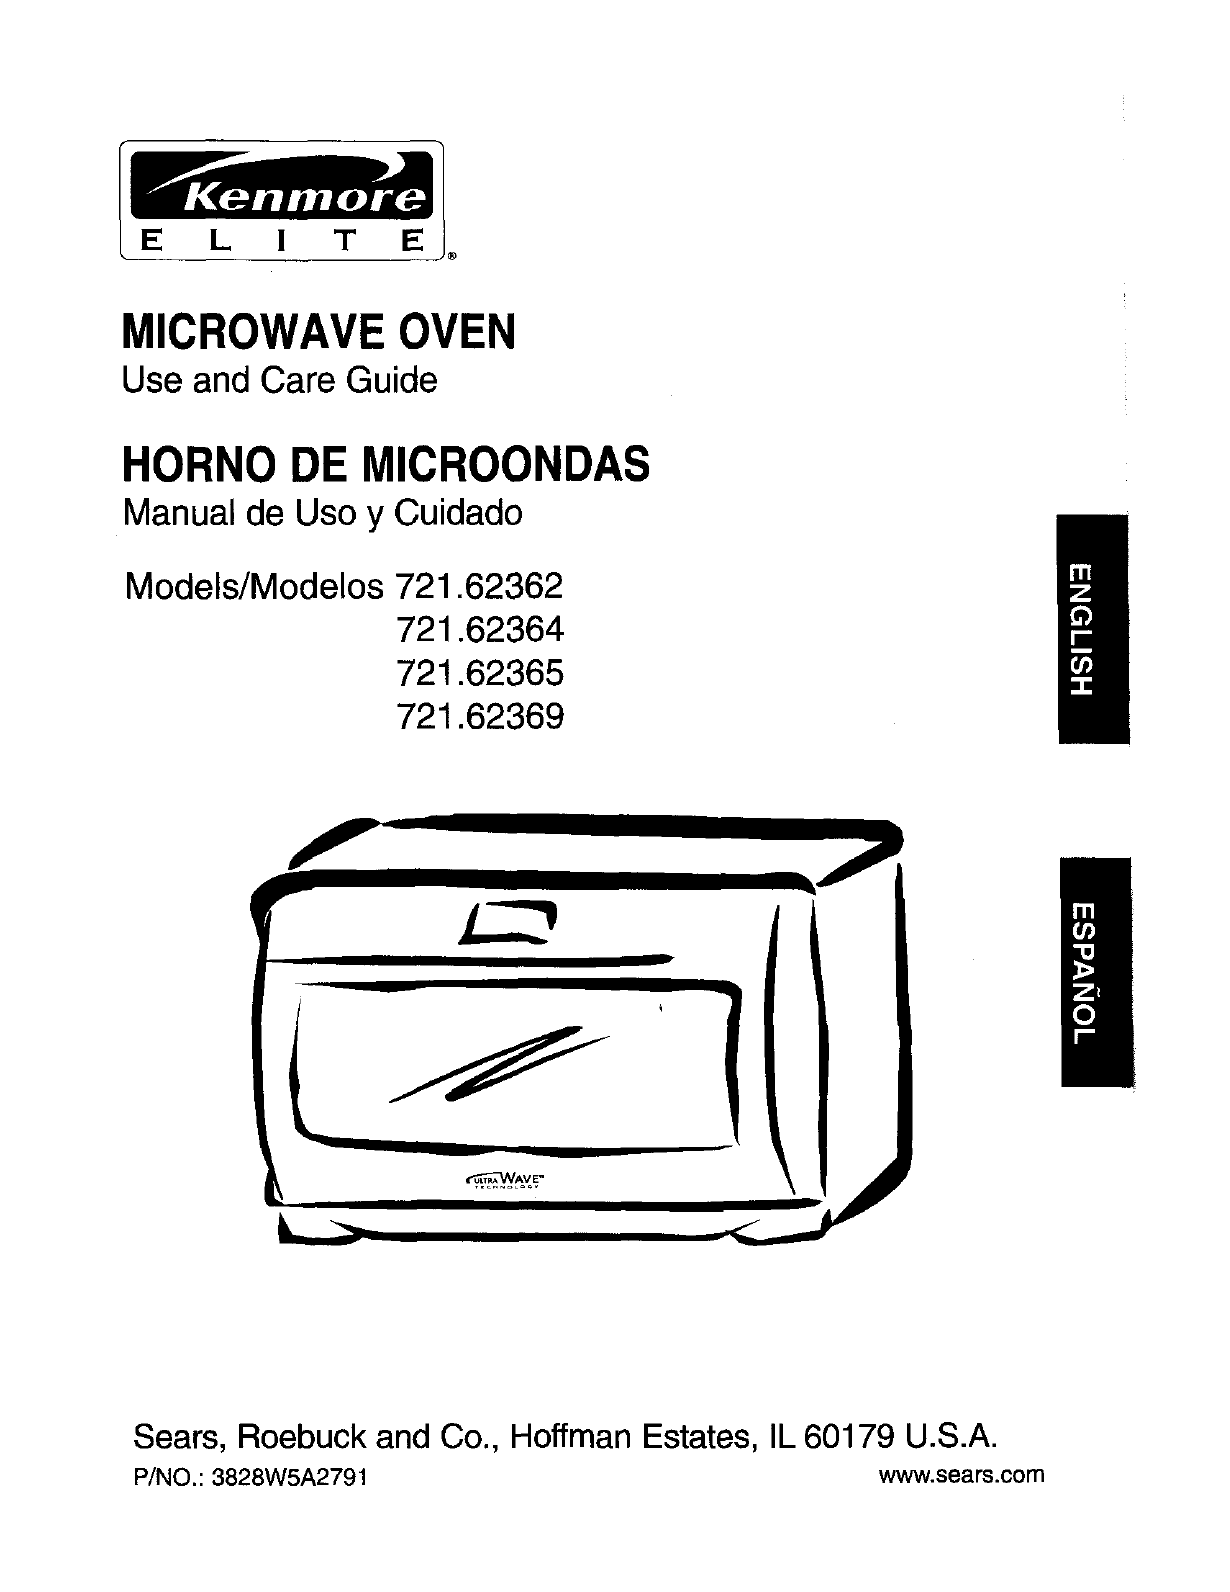 Kenmore Microwave Oven 721 62364 User